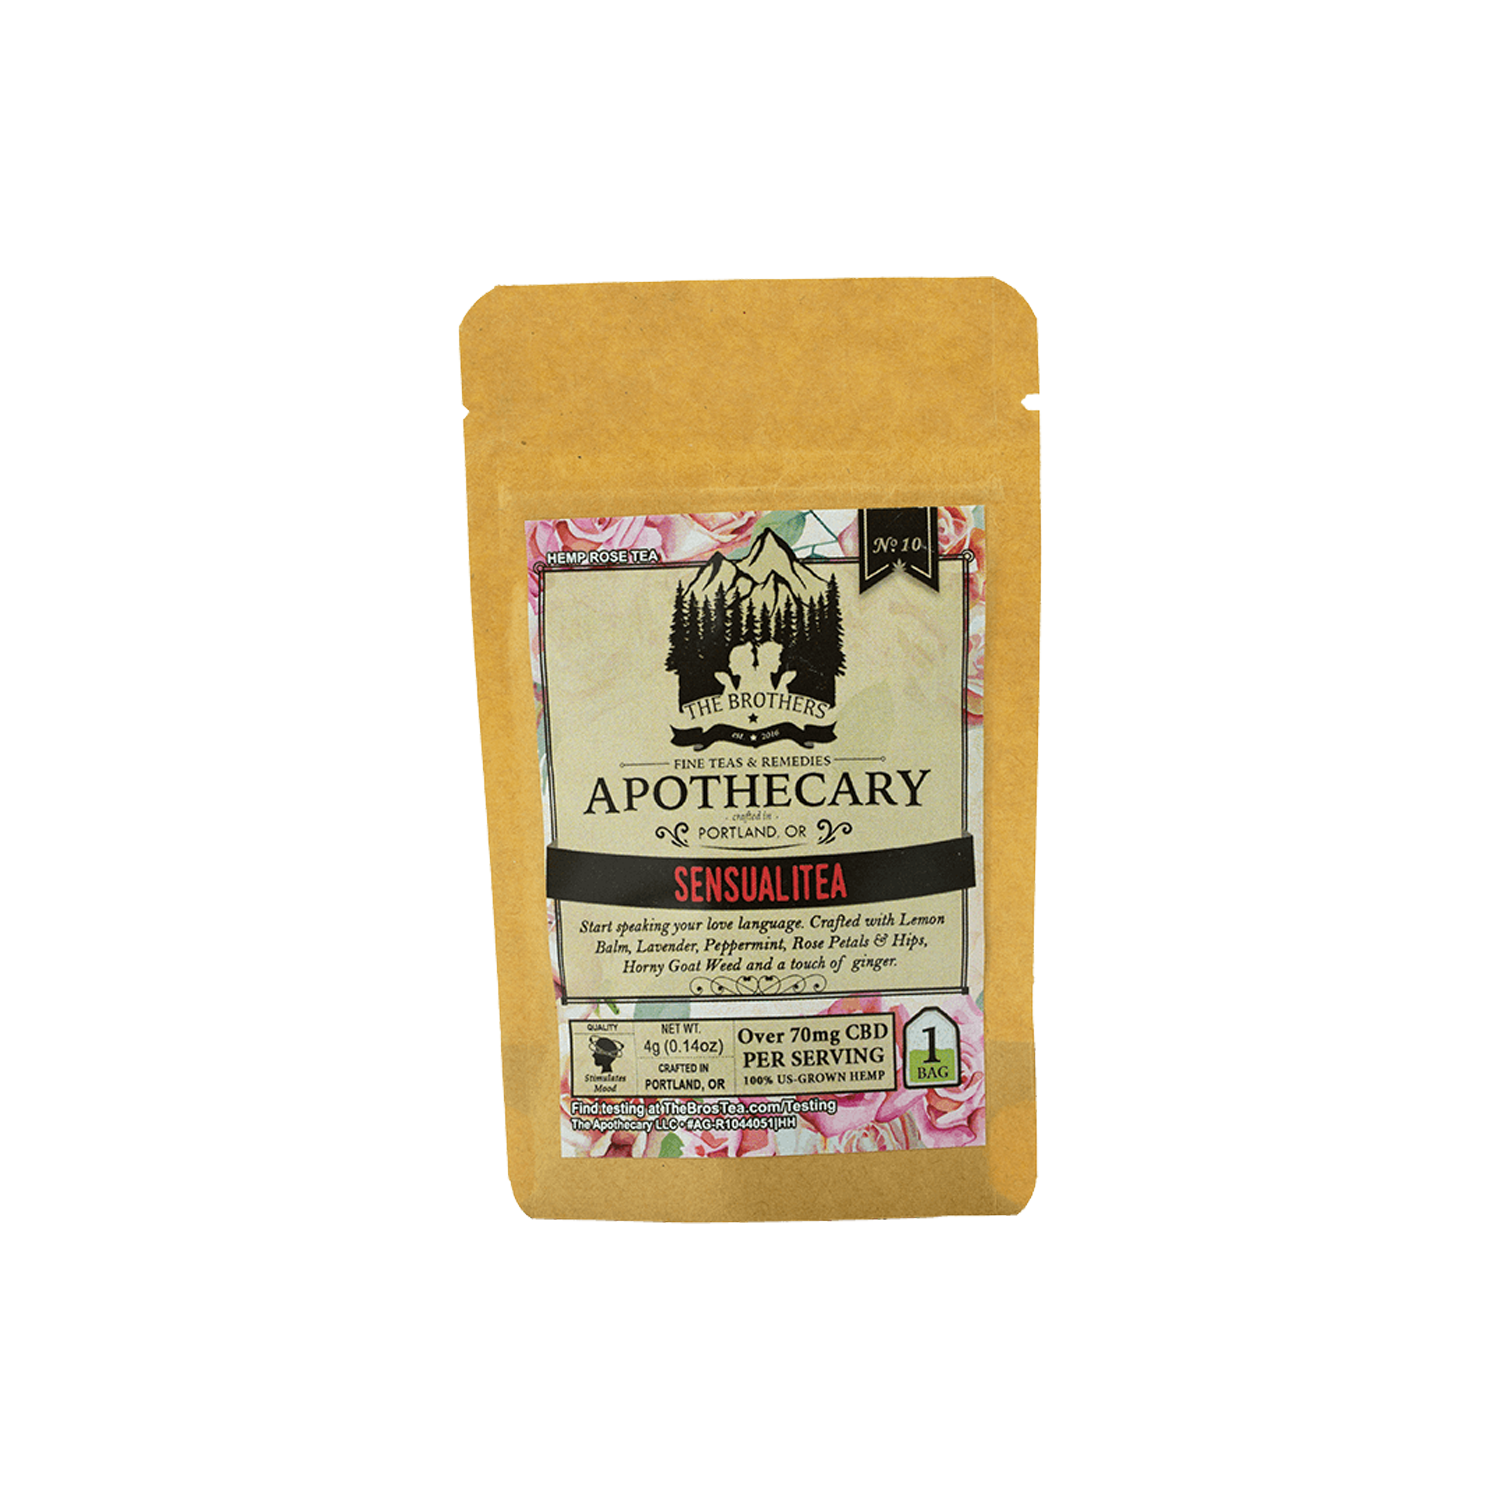 The Brothers Apothecary Tea Bags | Sensualitea - 60mg Full Spectrum CBD